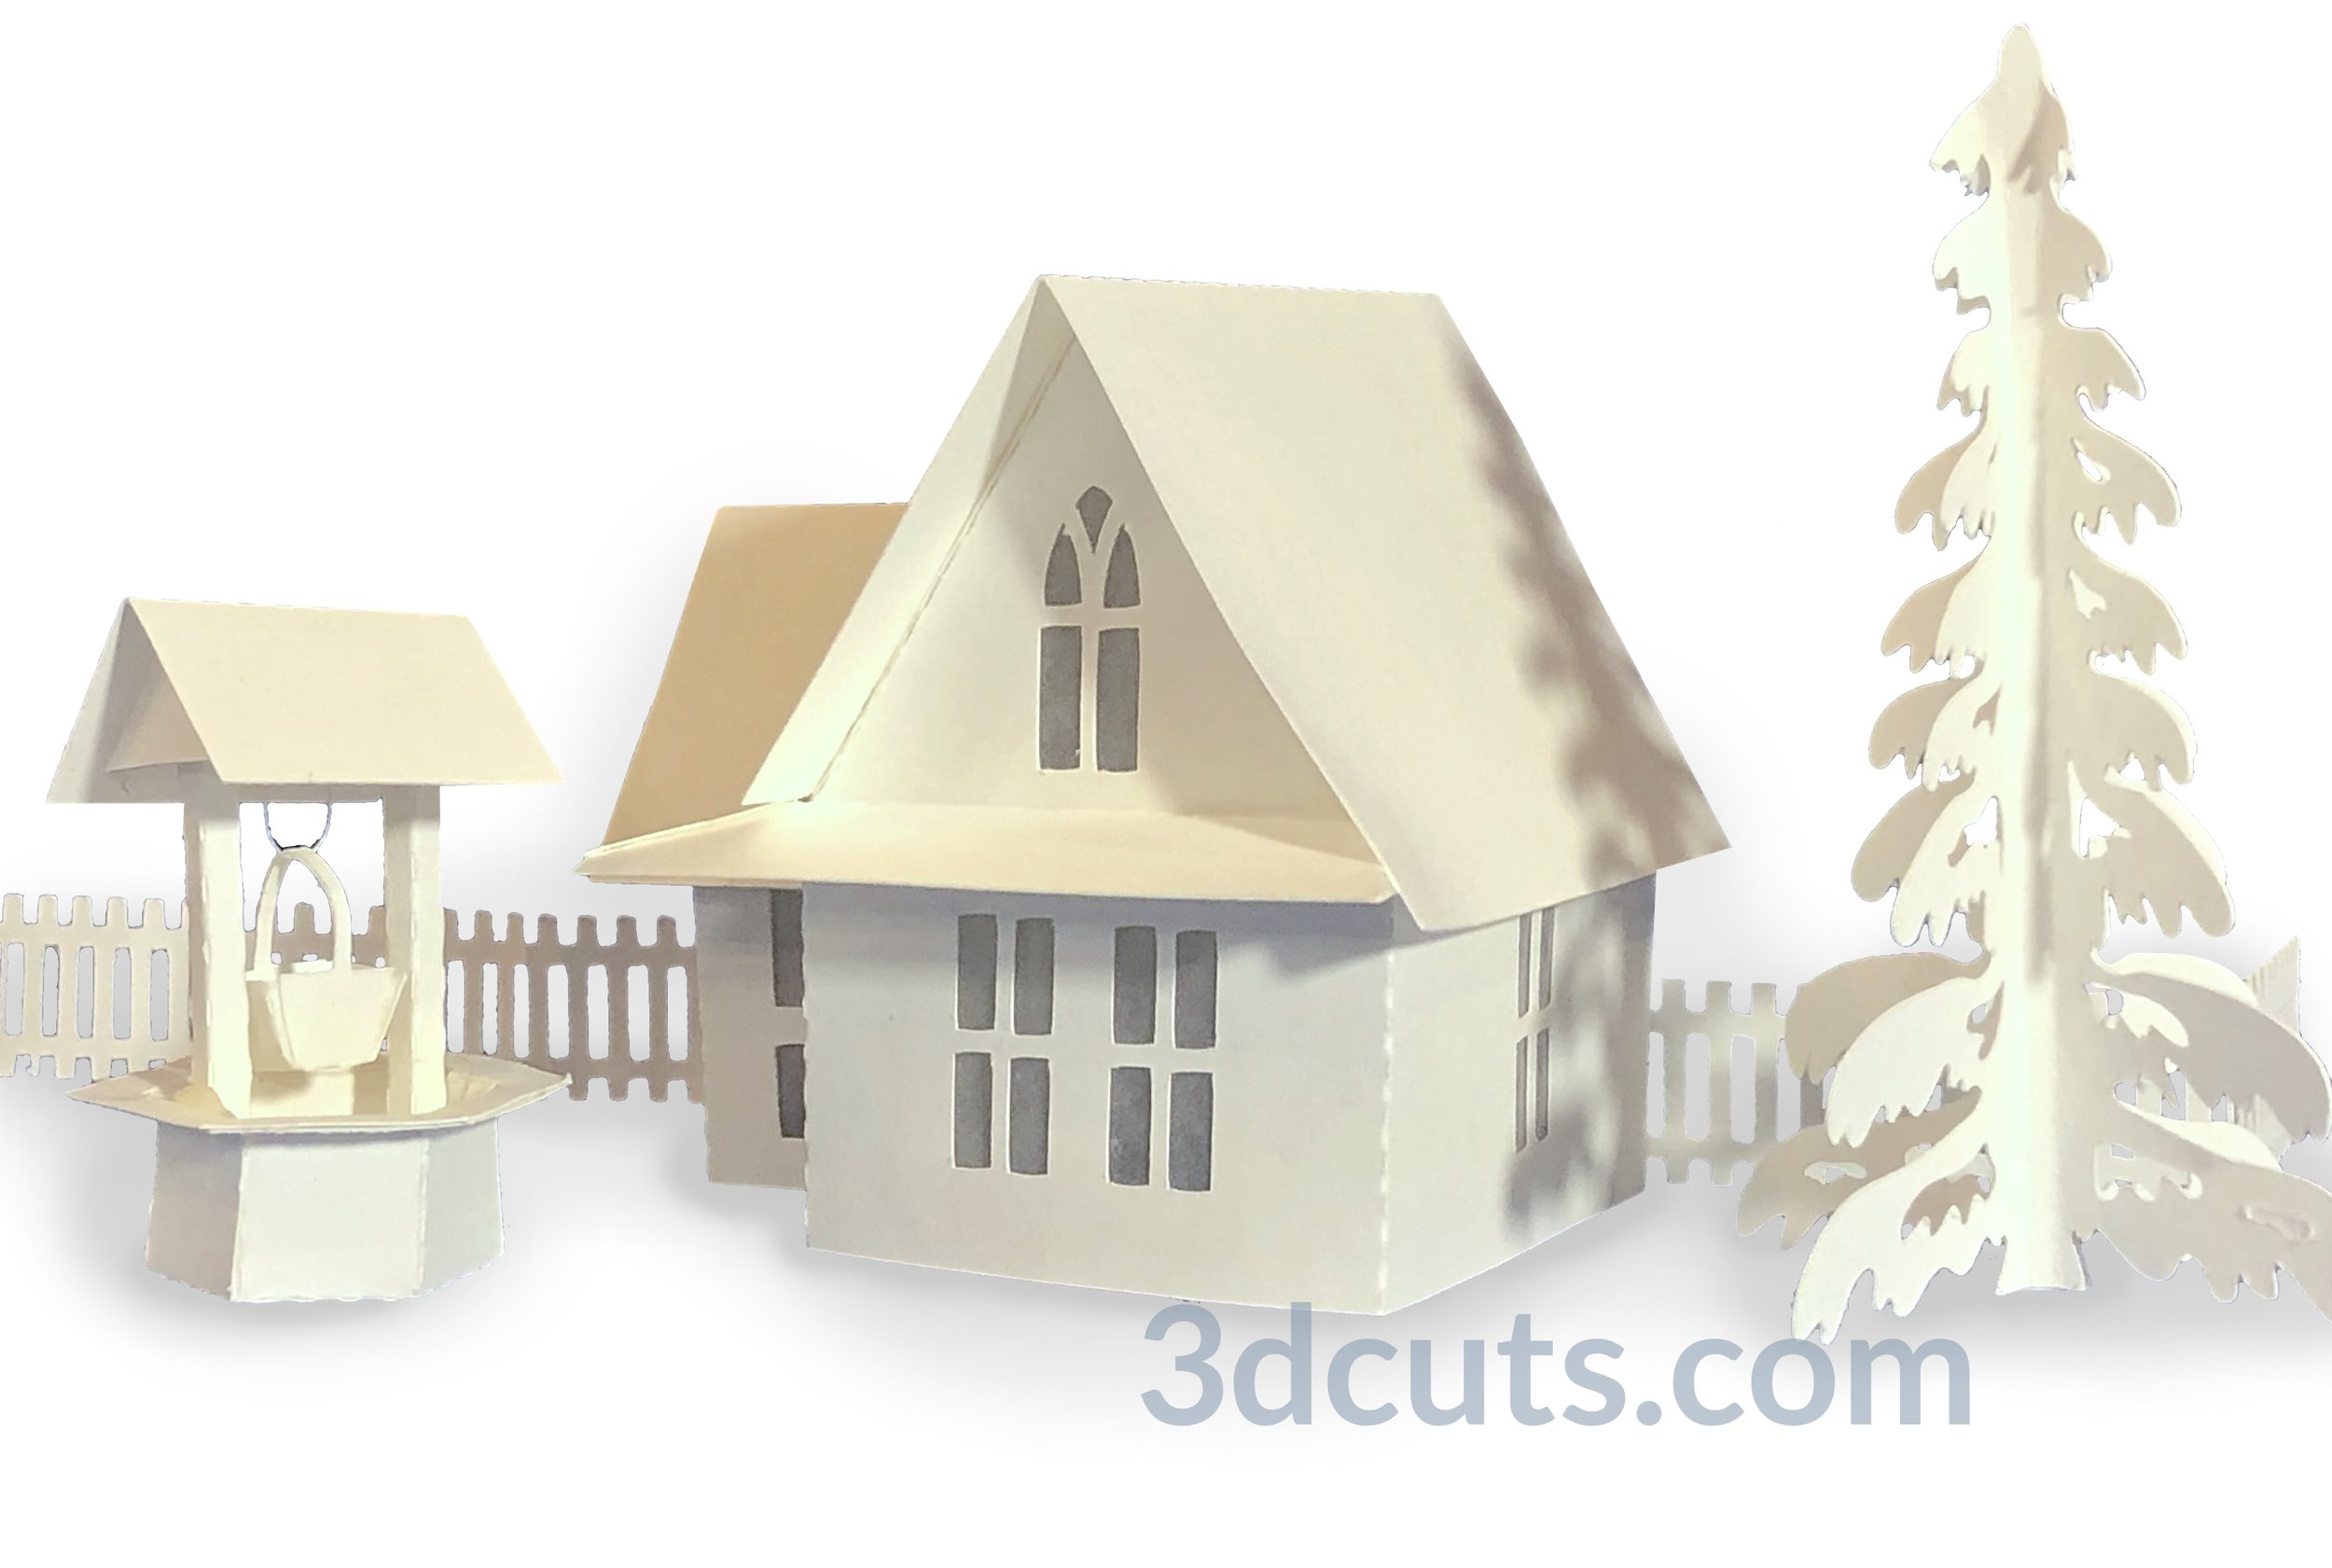 Tea Light Village, 3DCuts.com, Marji Roy, 3D cutting files in .svg, .dxf, and .pdf formats for use with Silhouette, Cricut and other cutting machines, paper crafting files